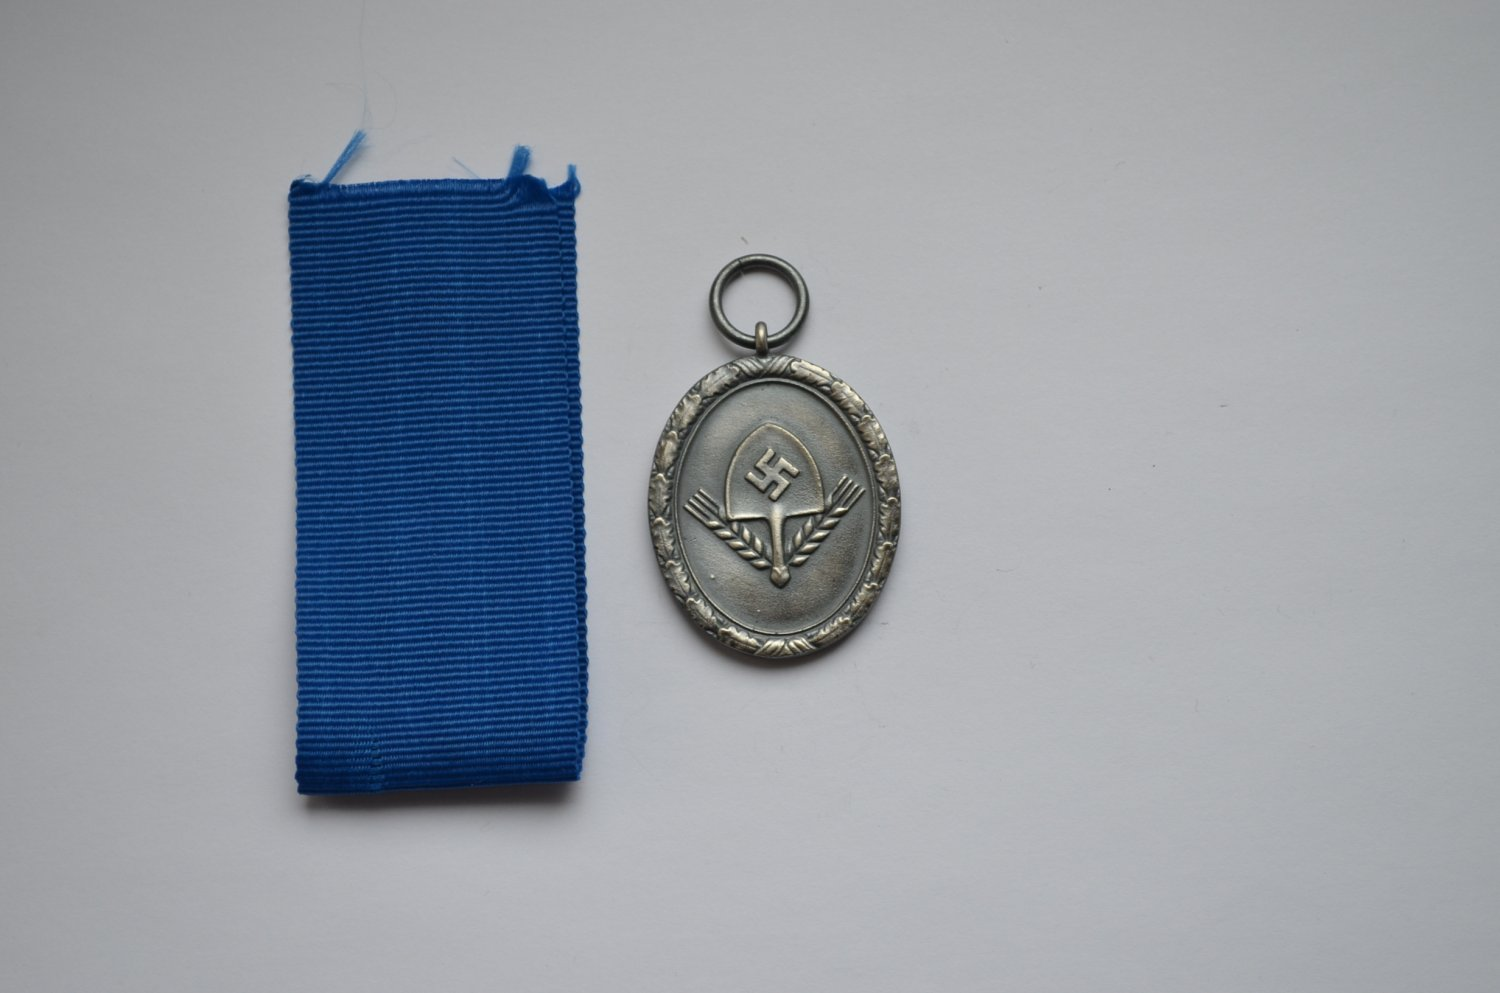 WWII GERMAN SILVER MEDAL LONG SERVICE AWARDS OF THE RAD